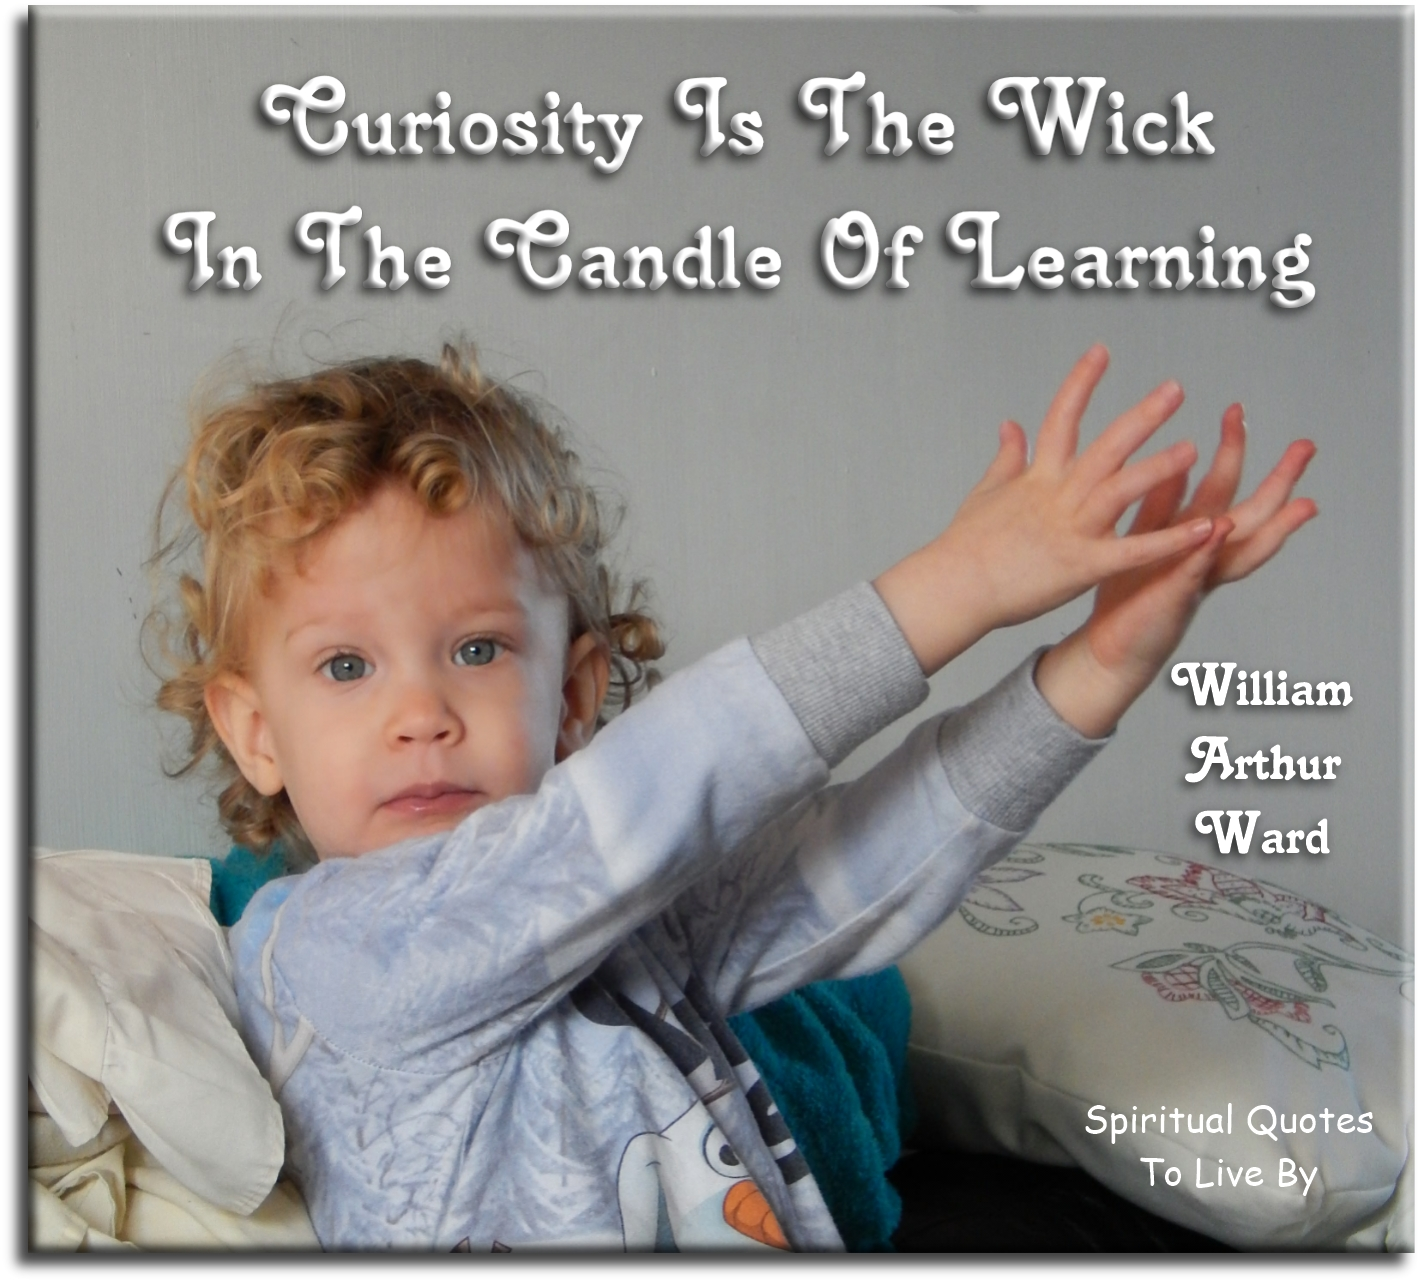 Curiosity is the wick in the candle of learning - William Arthur Ward - Spiritual Quotes To Live By